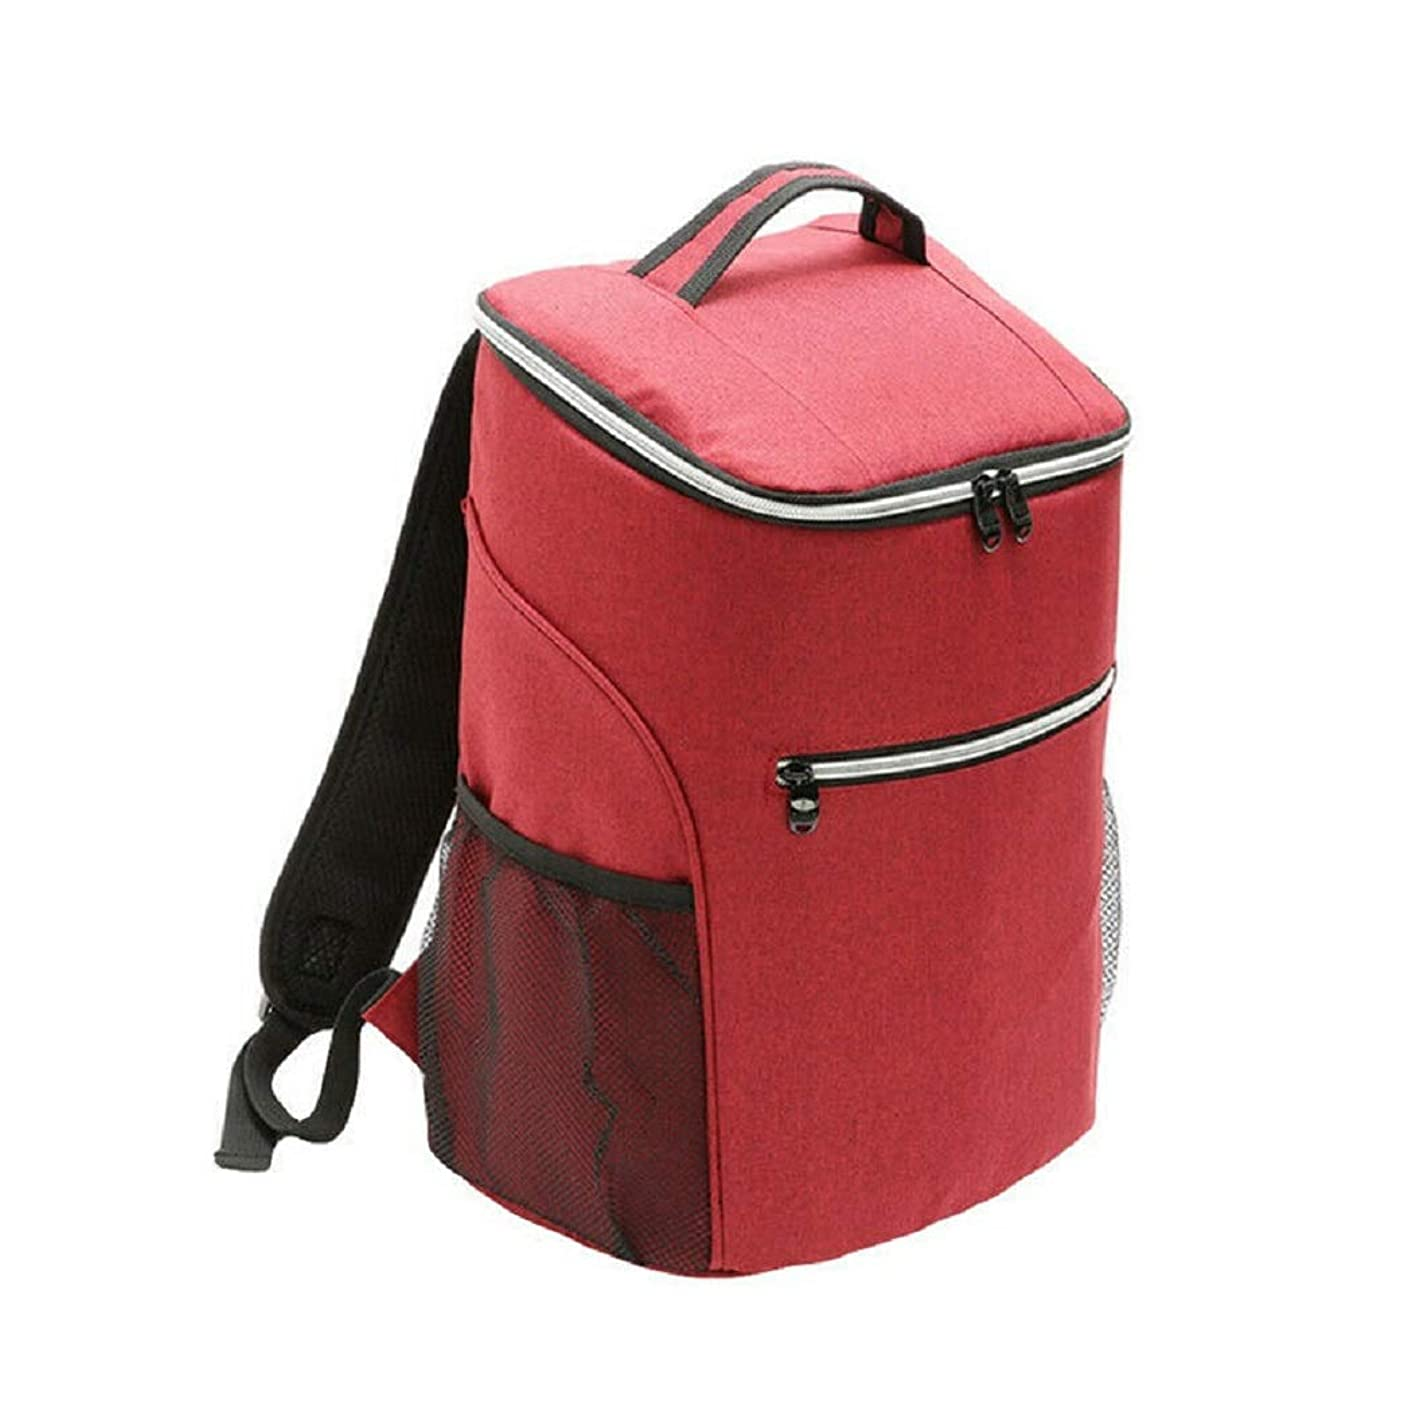 20L Large Cooler Bag, Thermal Bag, Lunch Bag, Picnic Box Insulated Cooler Backpack Red by SHG